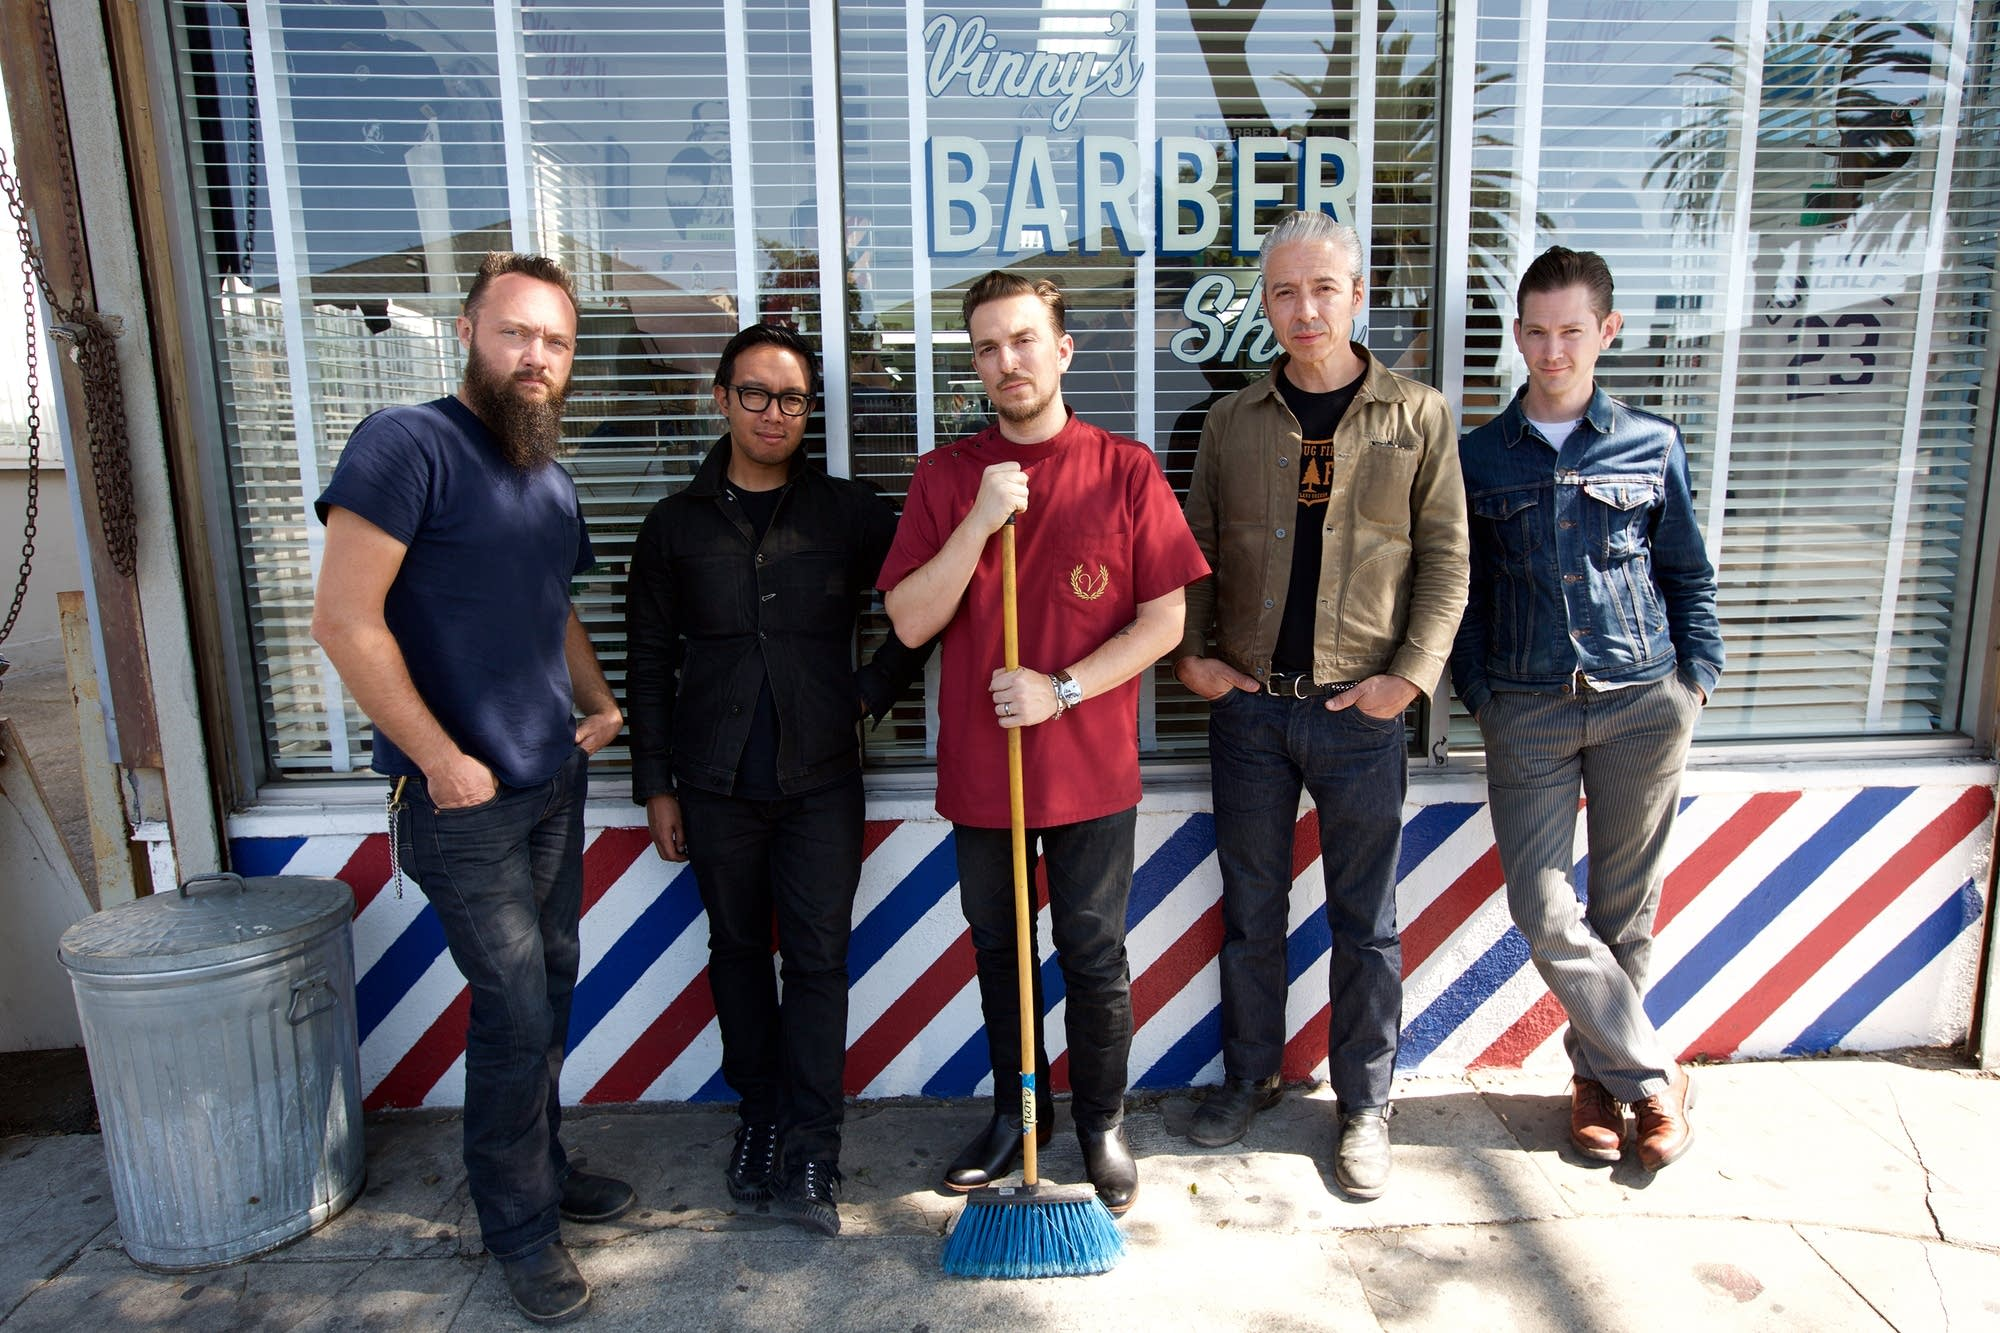 JD McPherson band outside Vinny's barbershop in Los Angeles